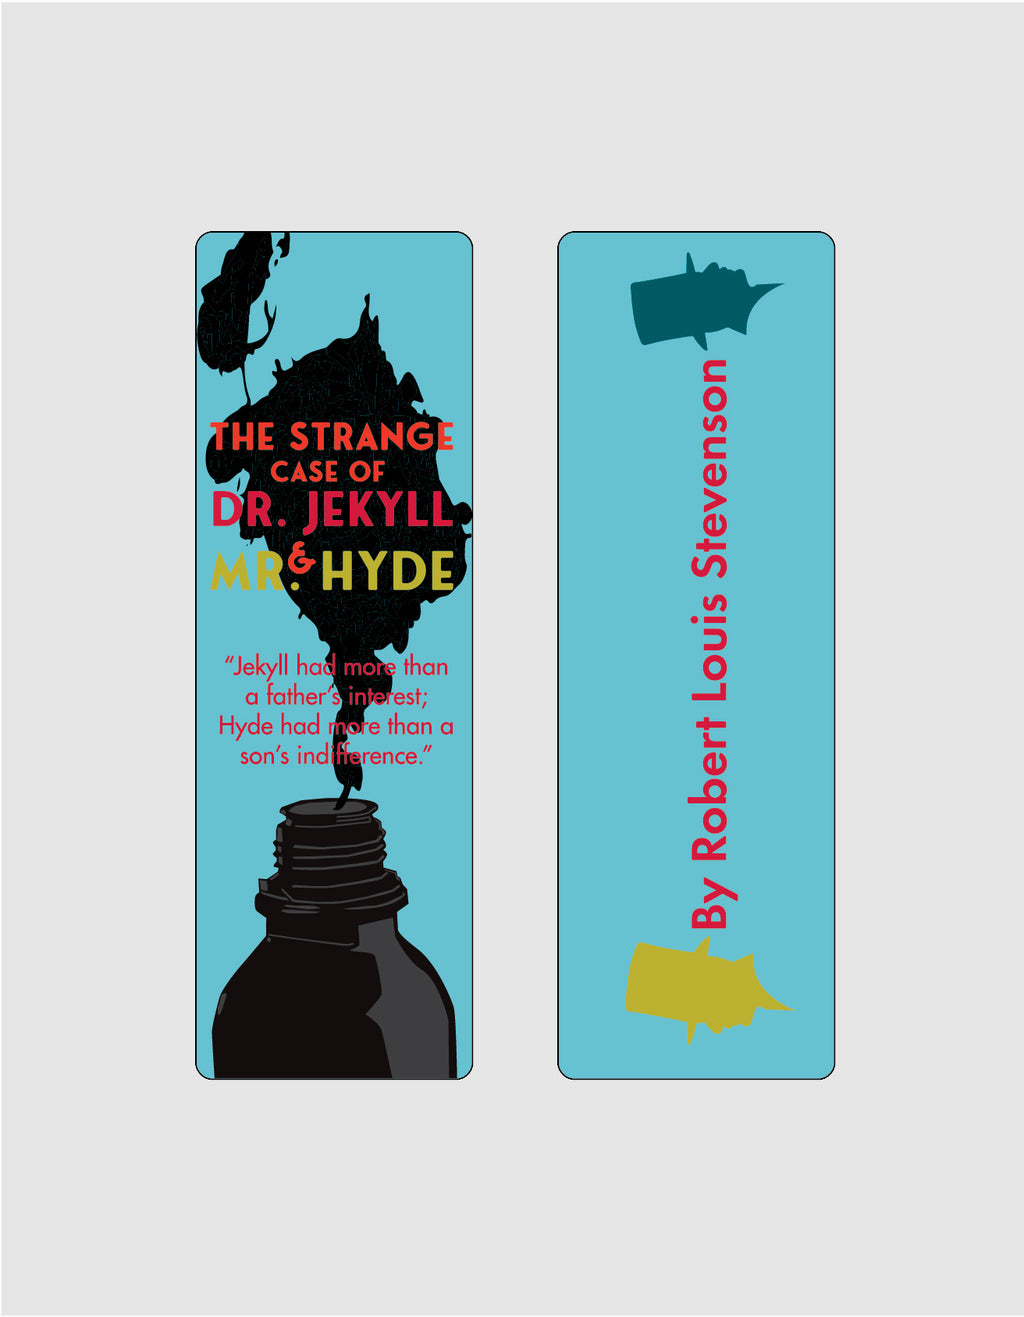 The Strange Case of Dr. Jekyll and Mr. Hyde by Robert Louis Stevenson Bookmark